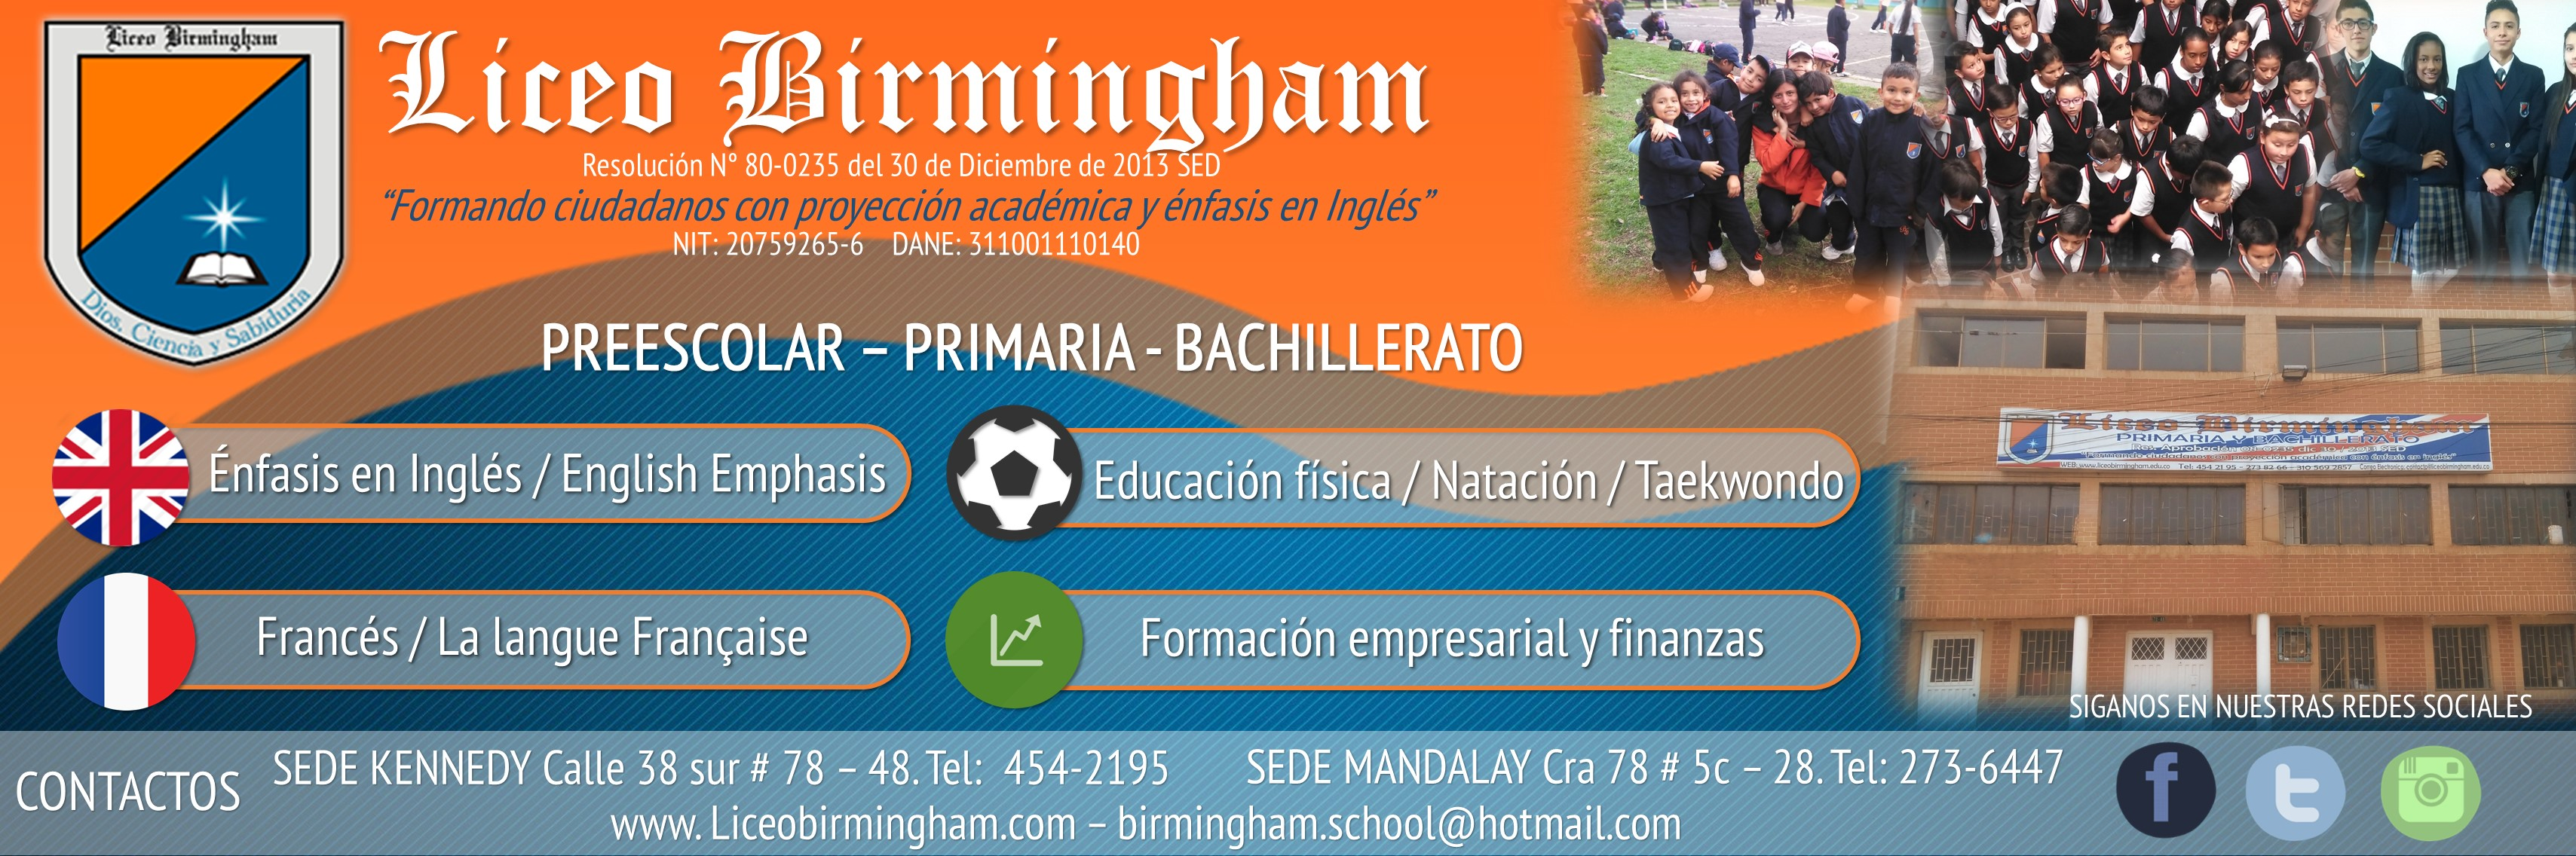 tl_files/A 2016 Abril/BannerBirminghan julio.jpg